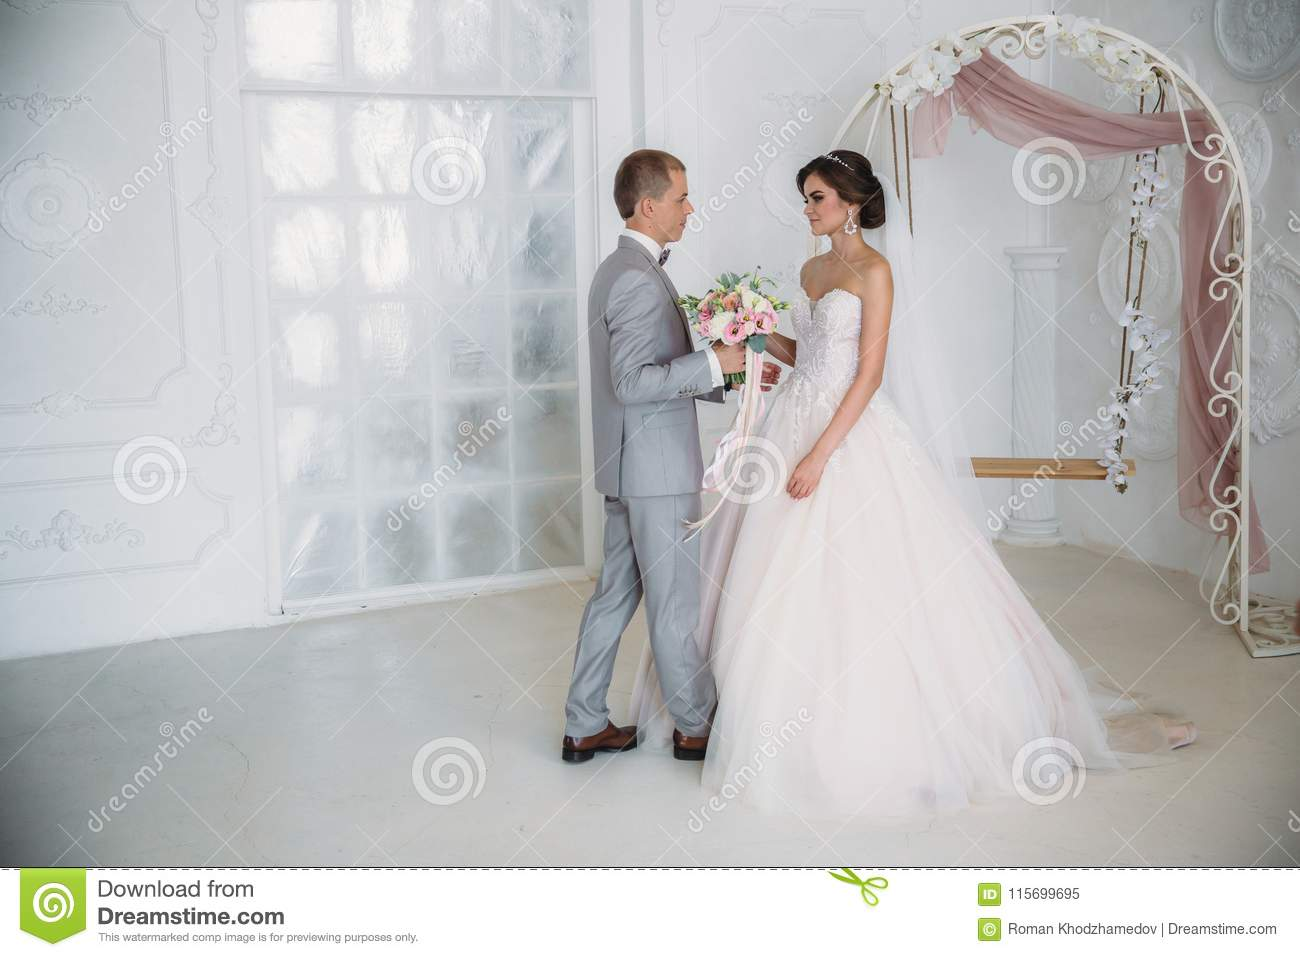 The bride hugs the groom and holds a bouquet of flowers in her hands. A beautiful couple of newlyweds on a wedding day